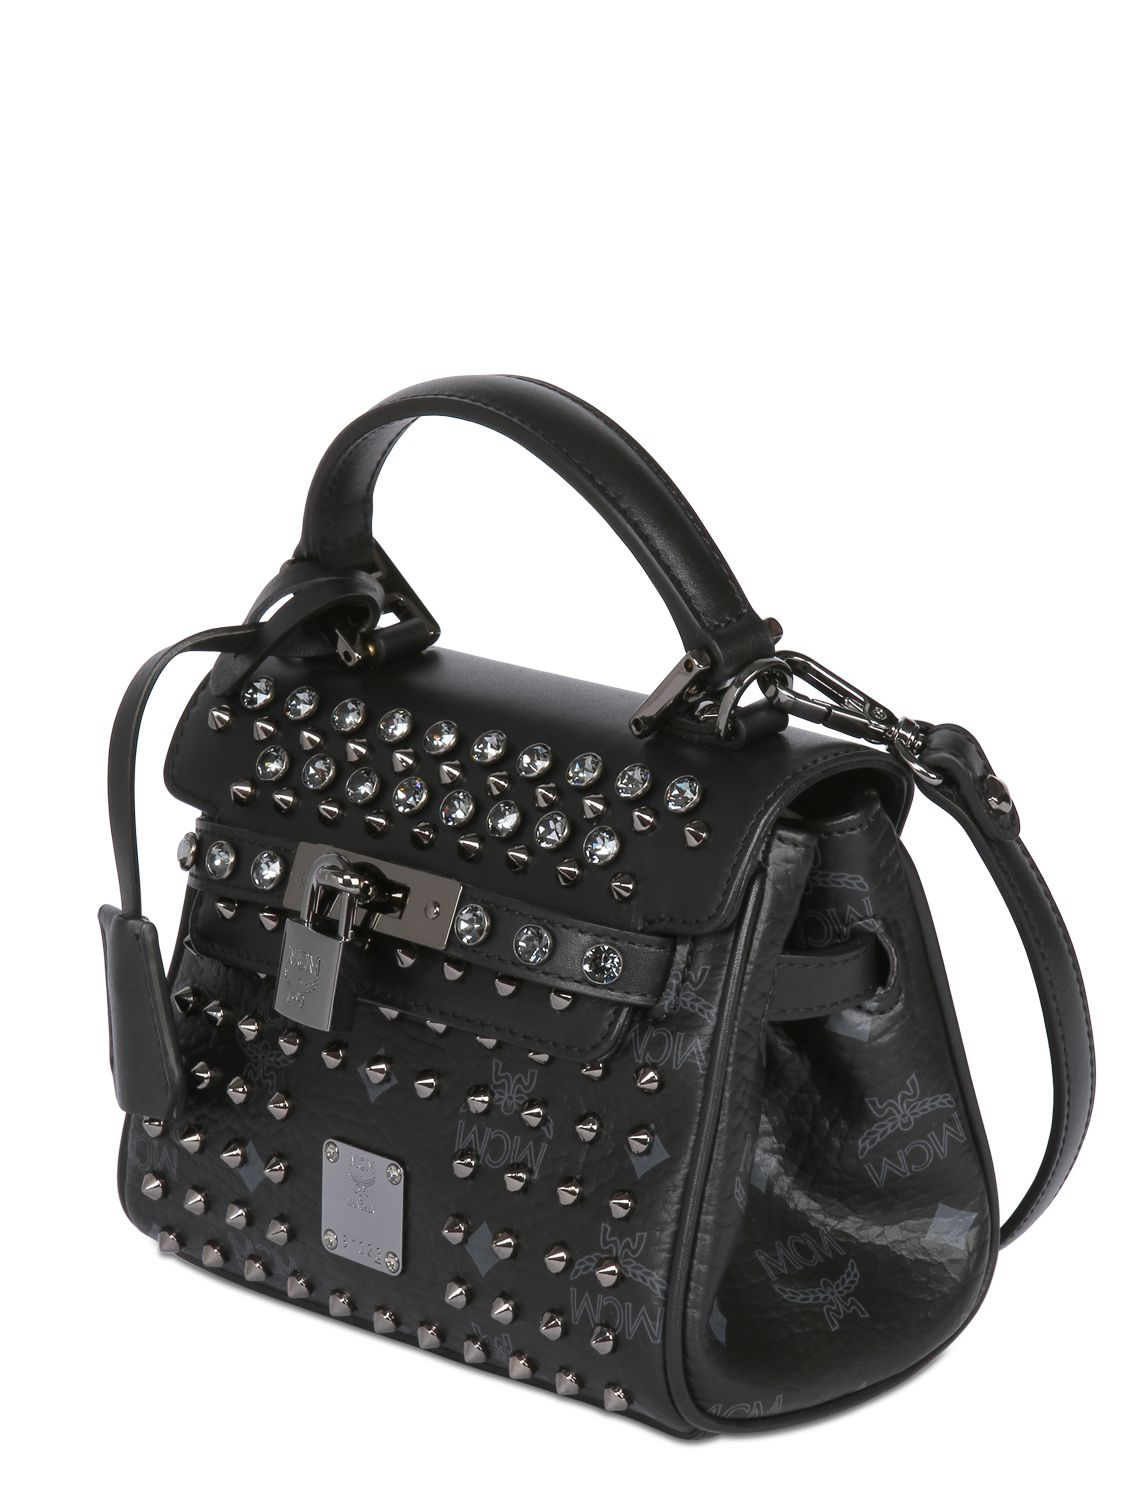 Mcm Studded Faux Leather Shoulder Bag in Black | Lyst